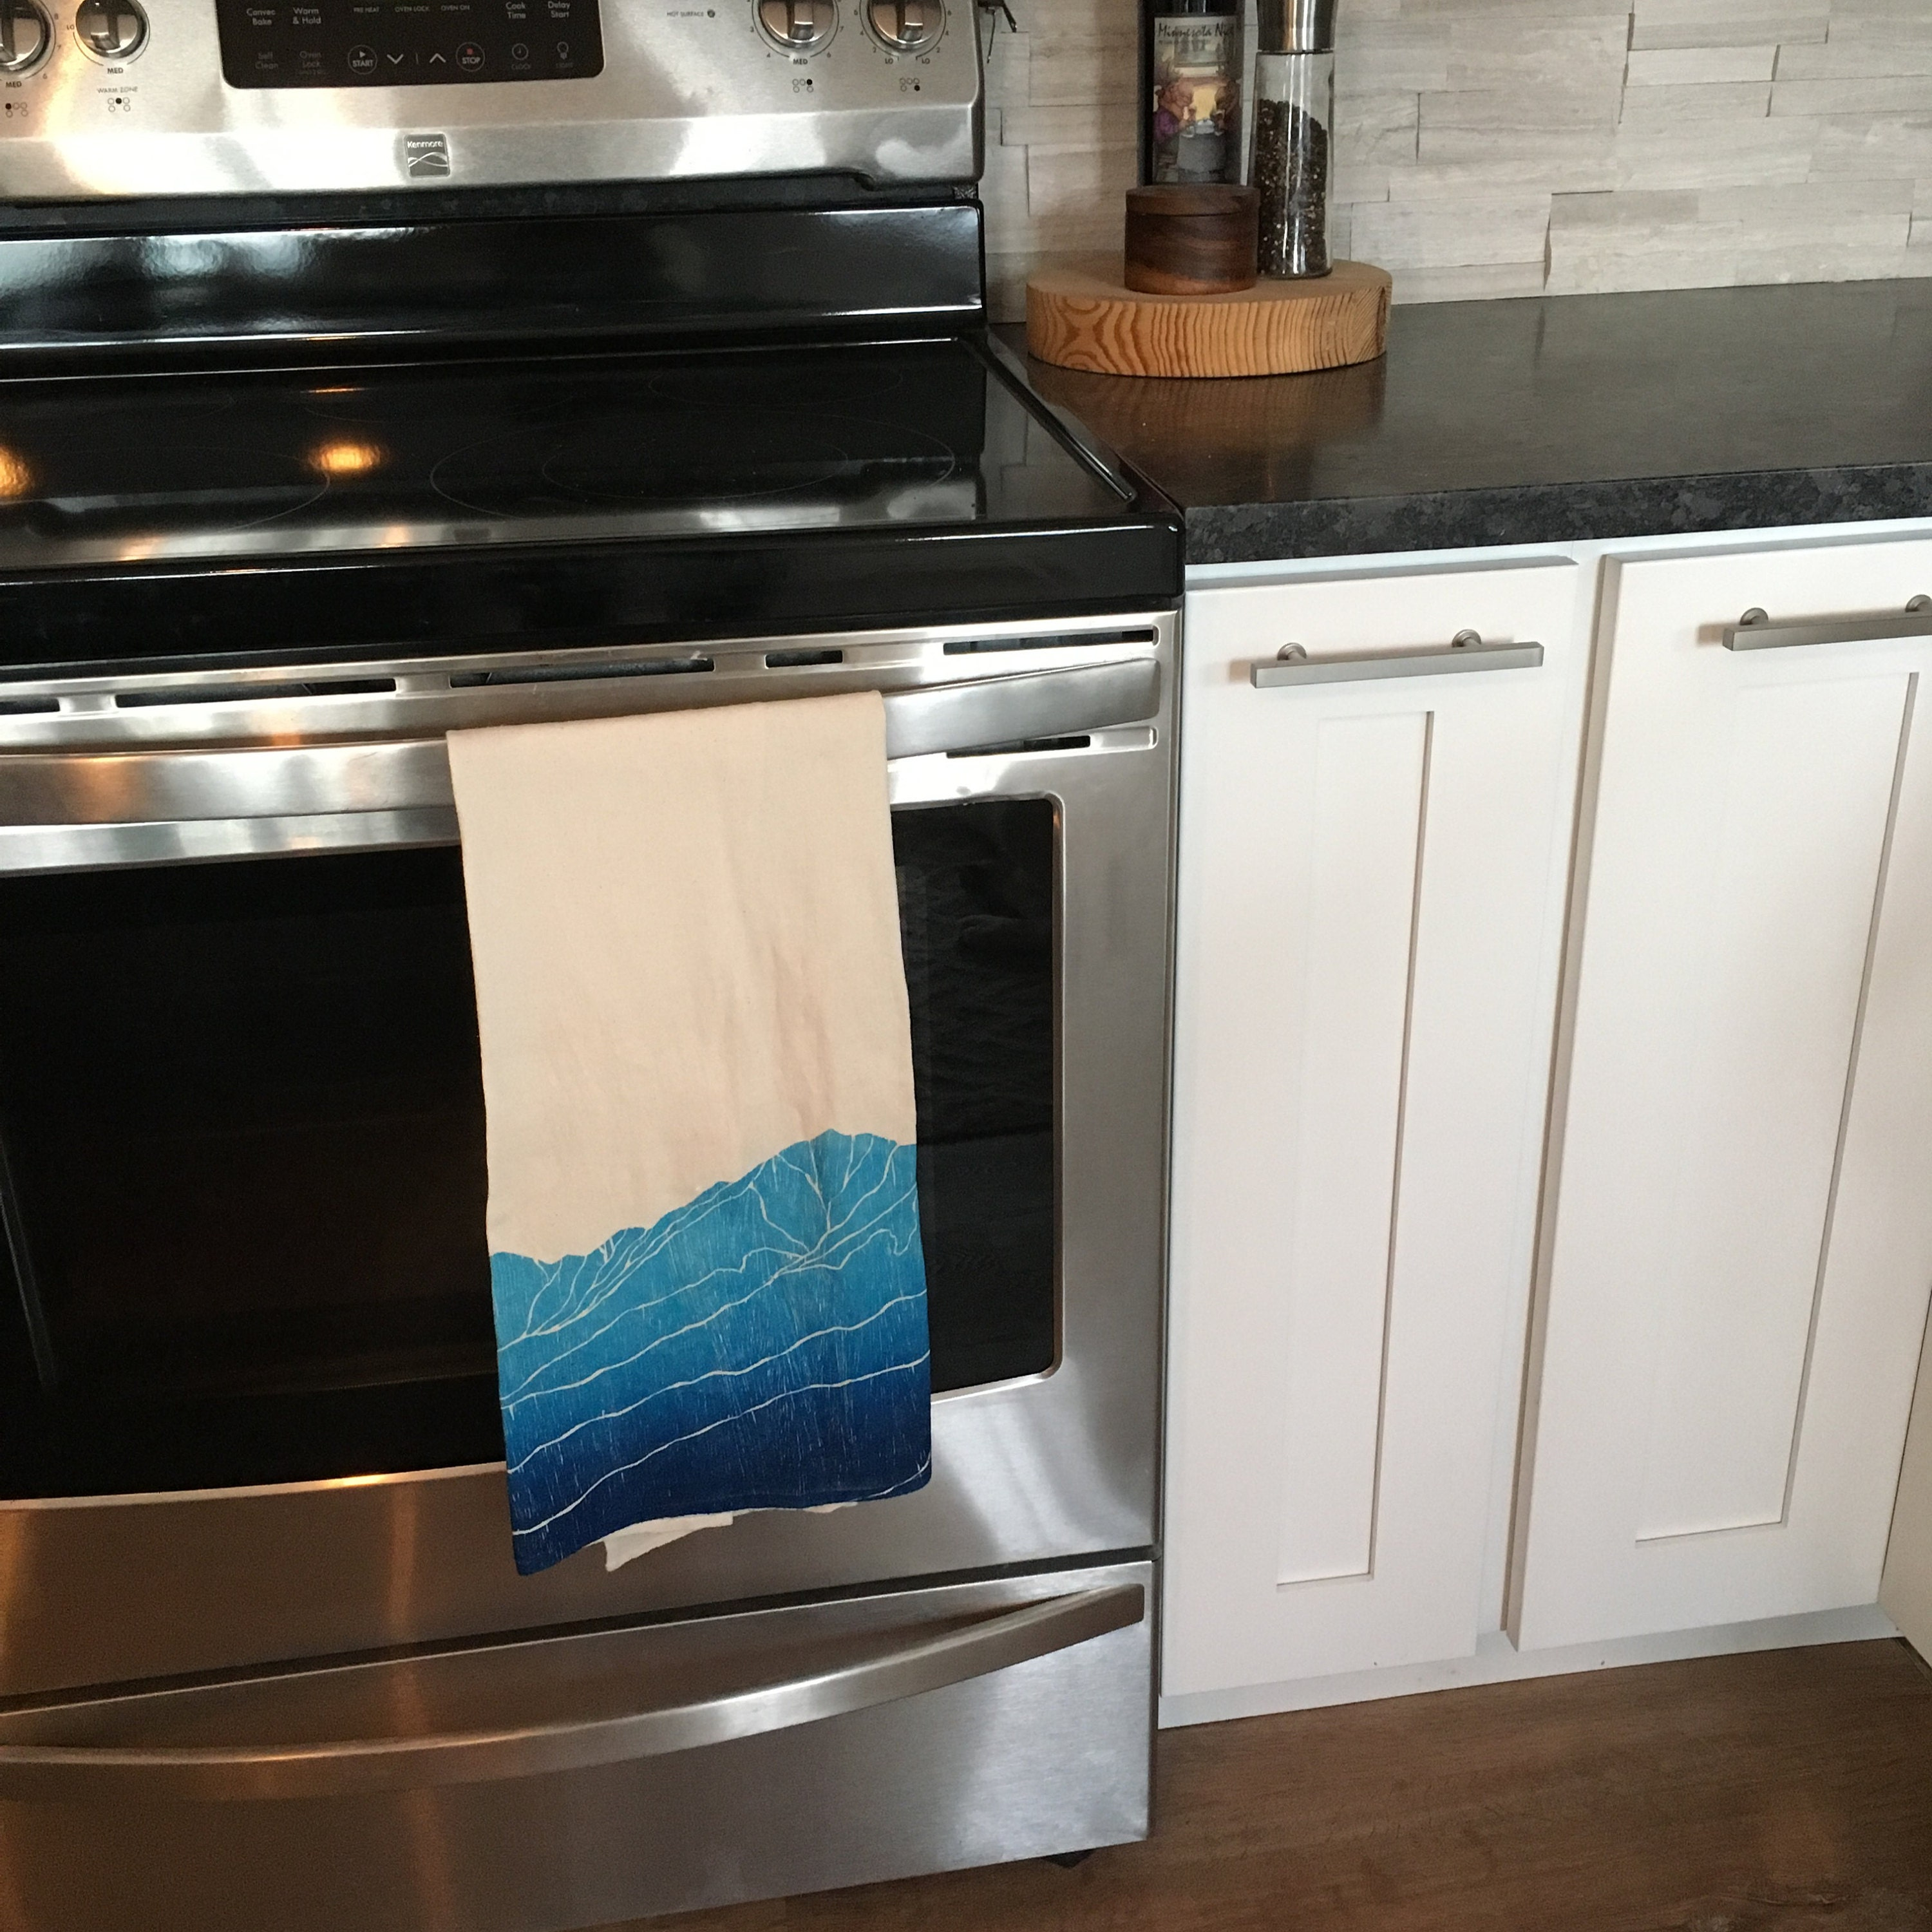 Lara Tuttle added a photo of their purchase